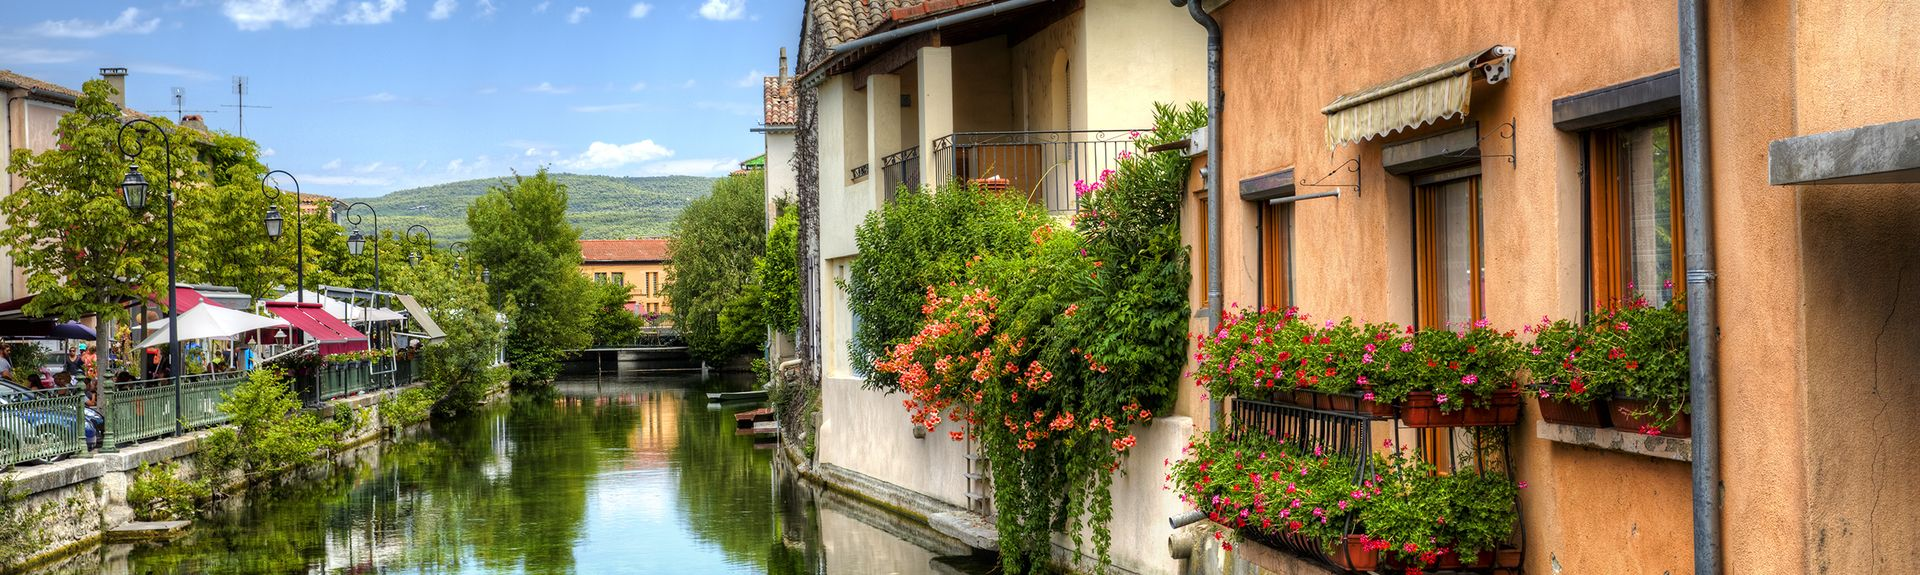 L'Isle-sur-la-Sorgue, Vaucluse (department), France